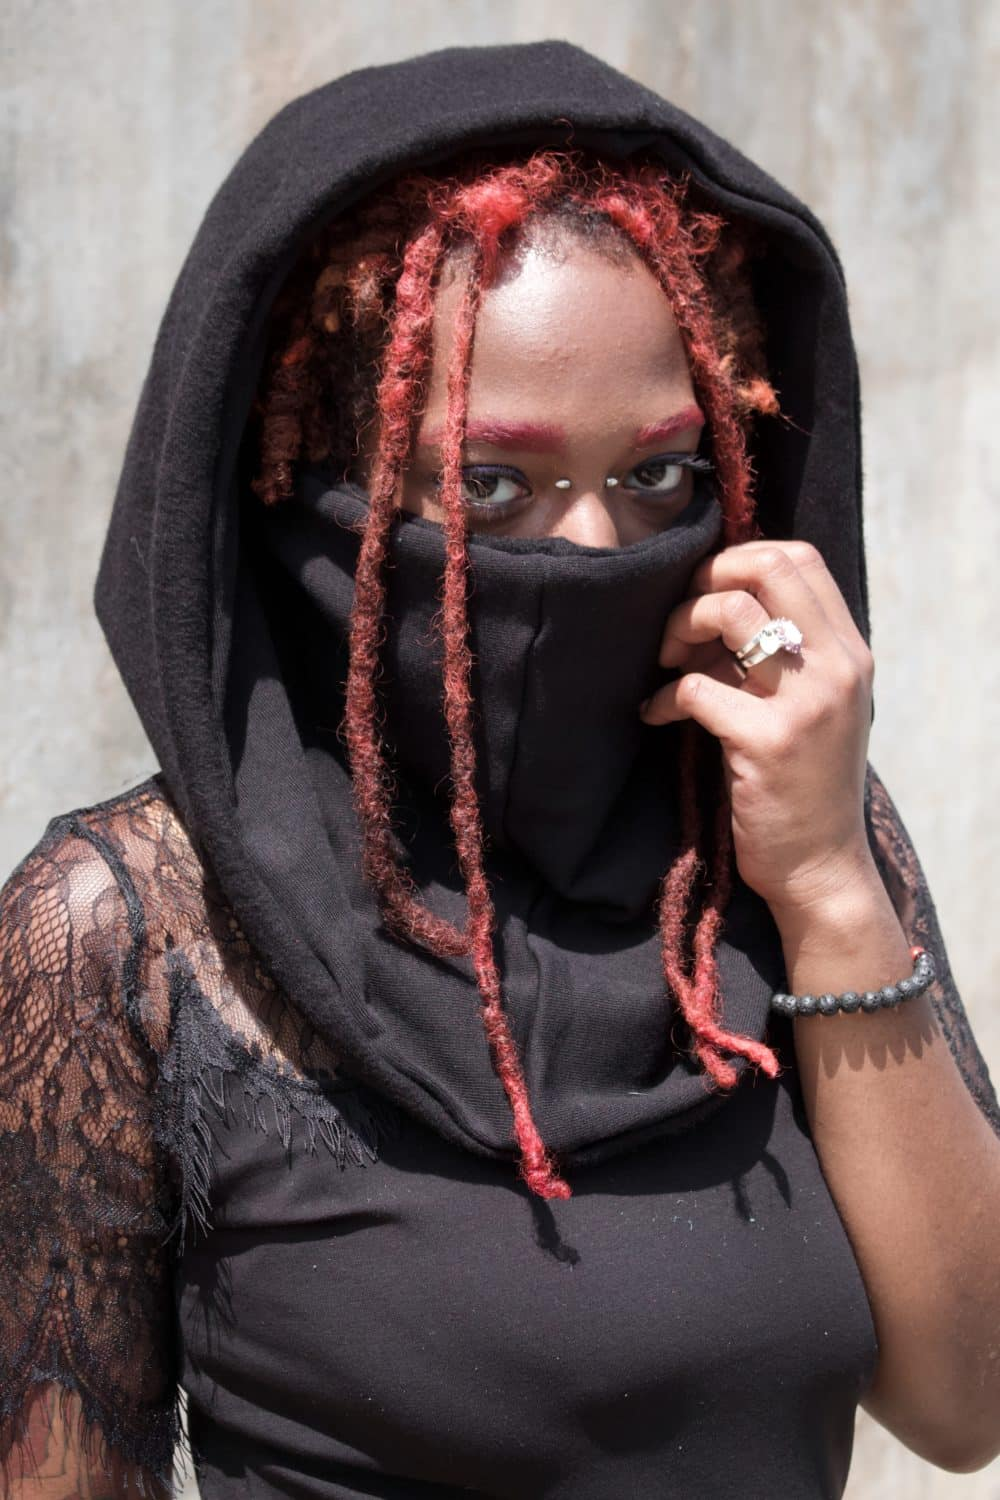 Woman in black hood with red dreads peaking through. The hood doubles as a scarf and a mask. All that is showing on her face is her eyes and forehead.